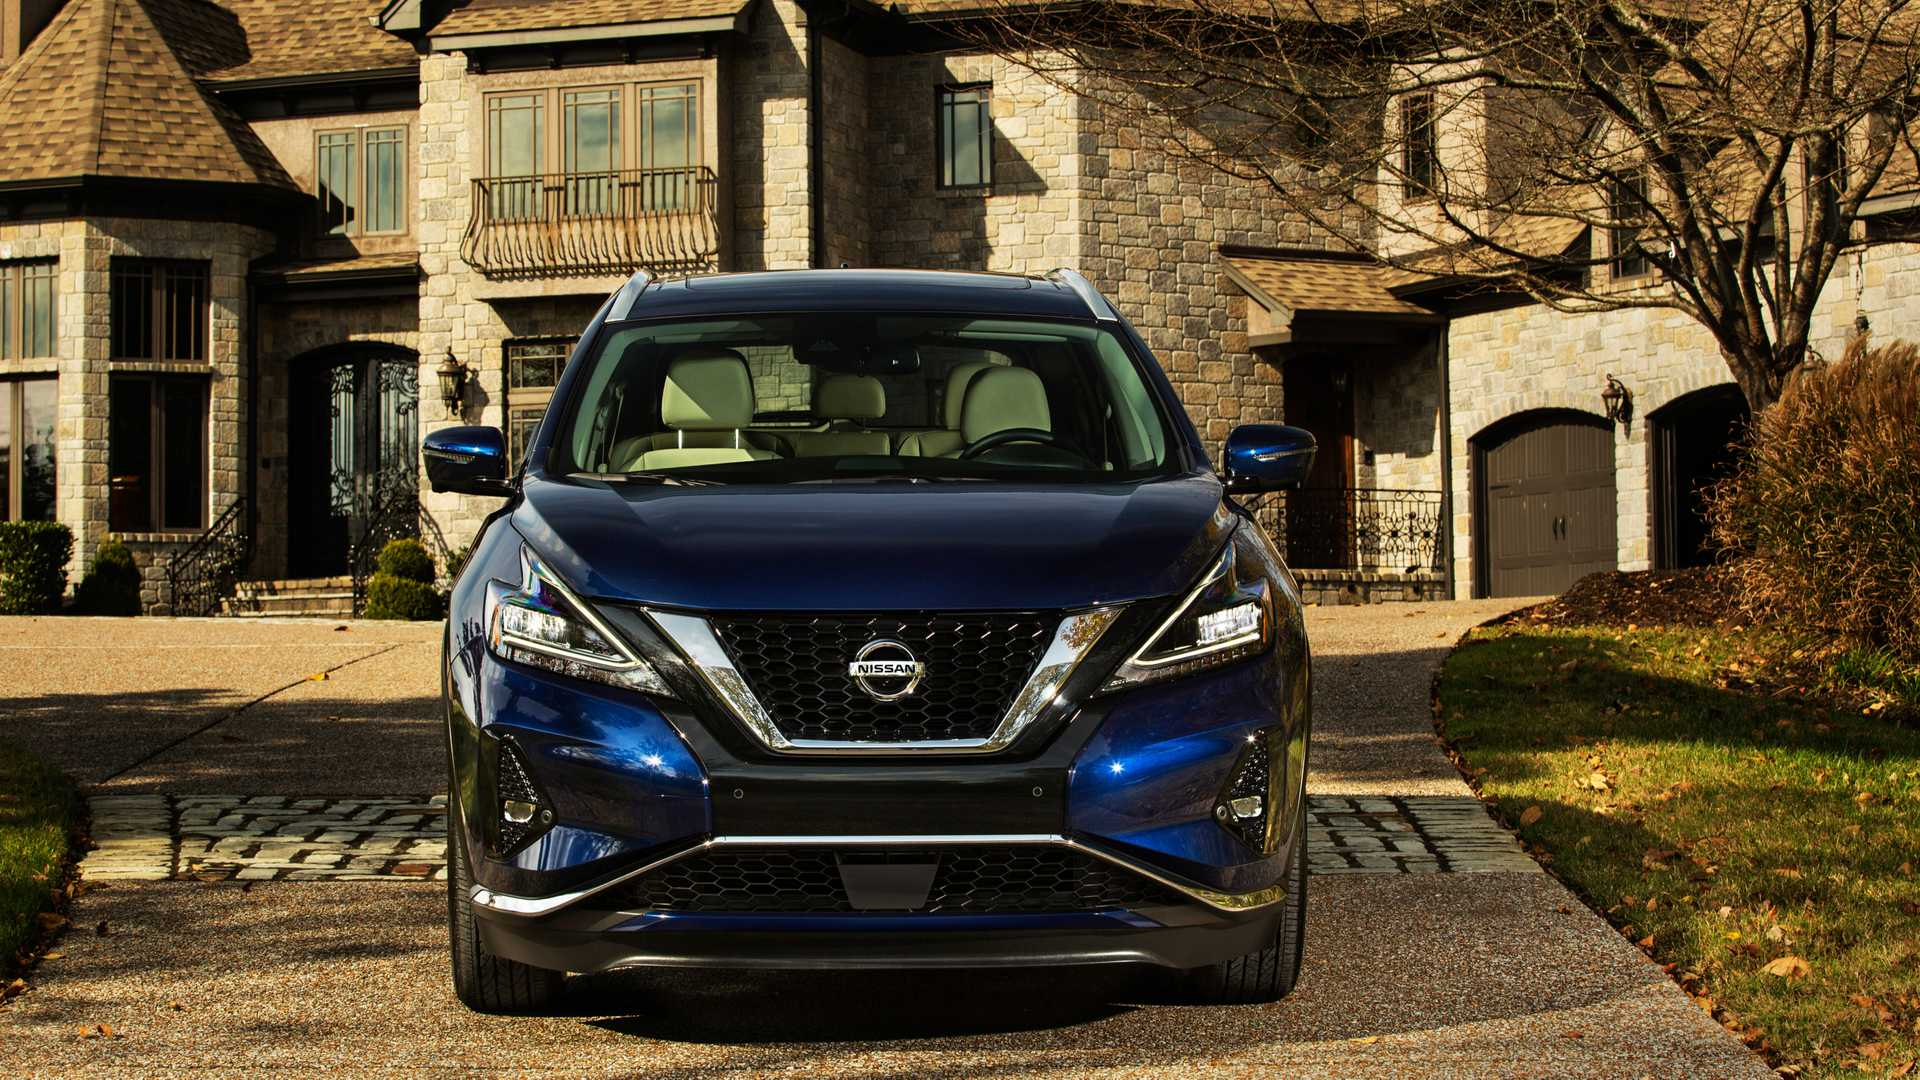 76 Great New Murano Nissan 2019 Picture New Concept for New Murano Nissan 2019 Picture